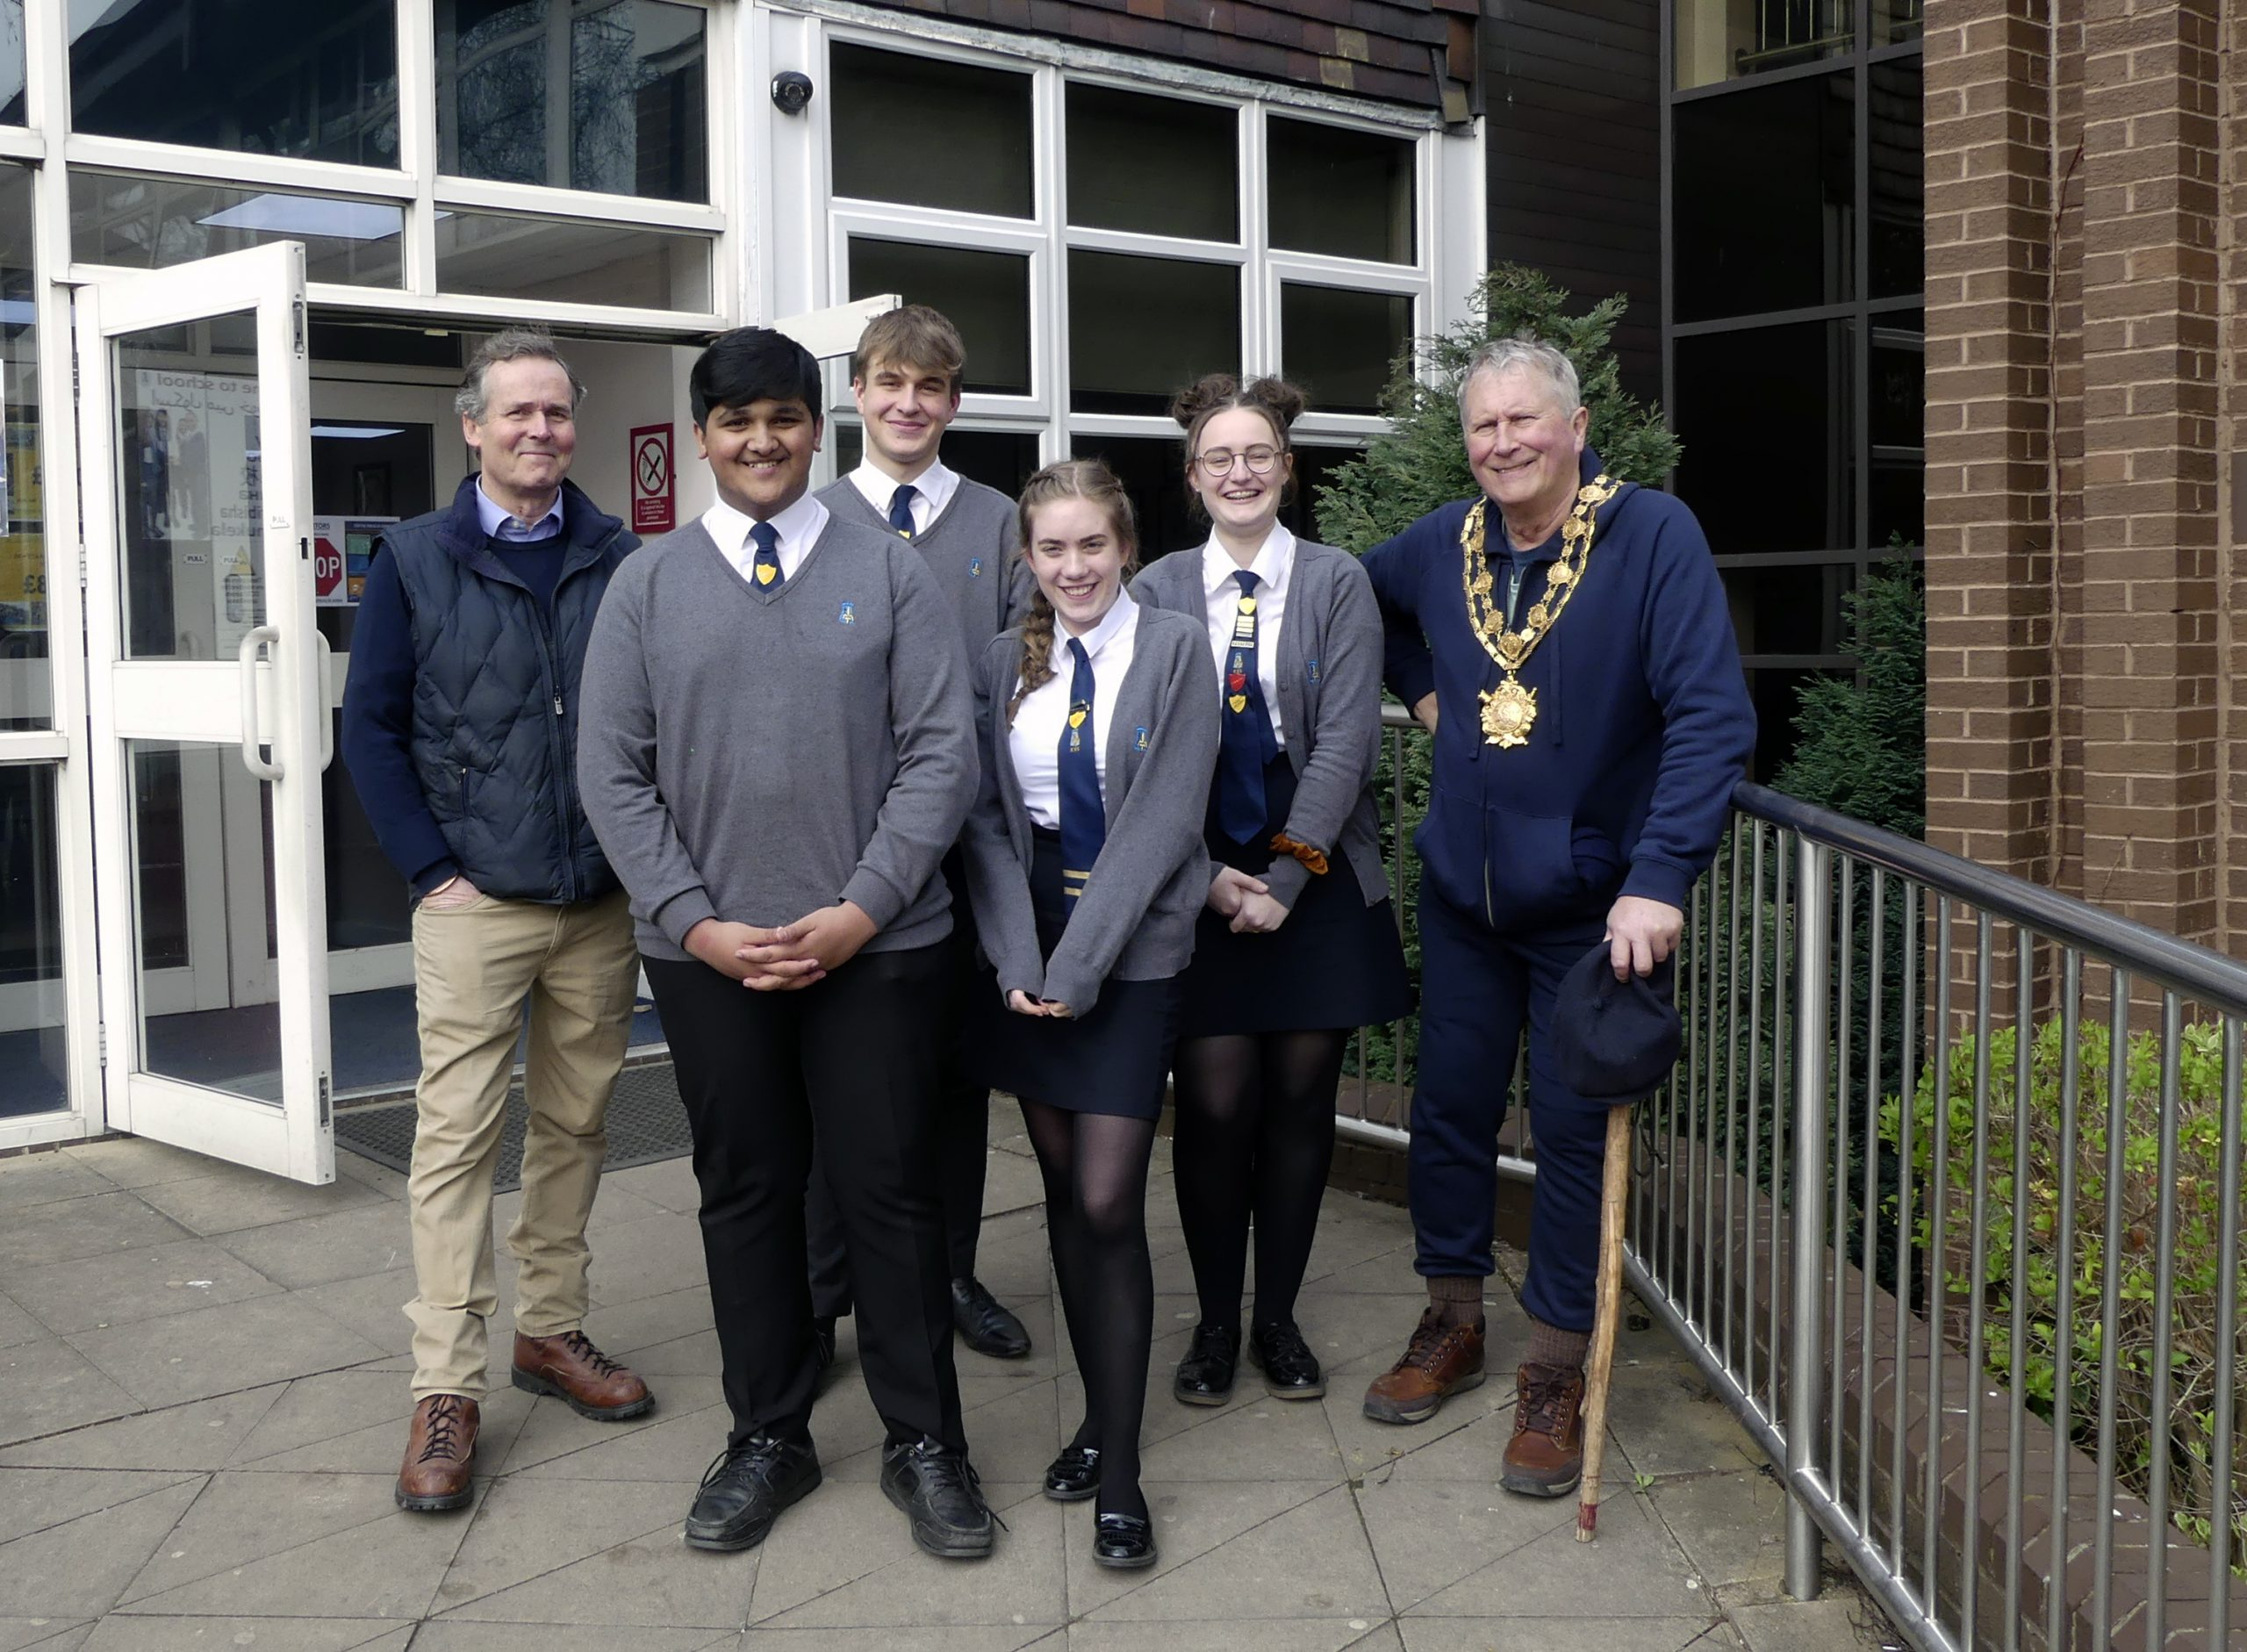 Mayor of Wakefield with the Head pupils March 2020